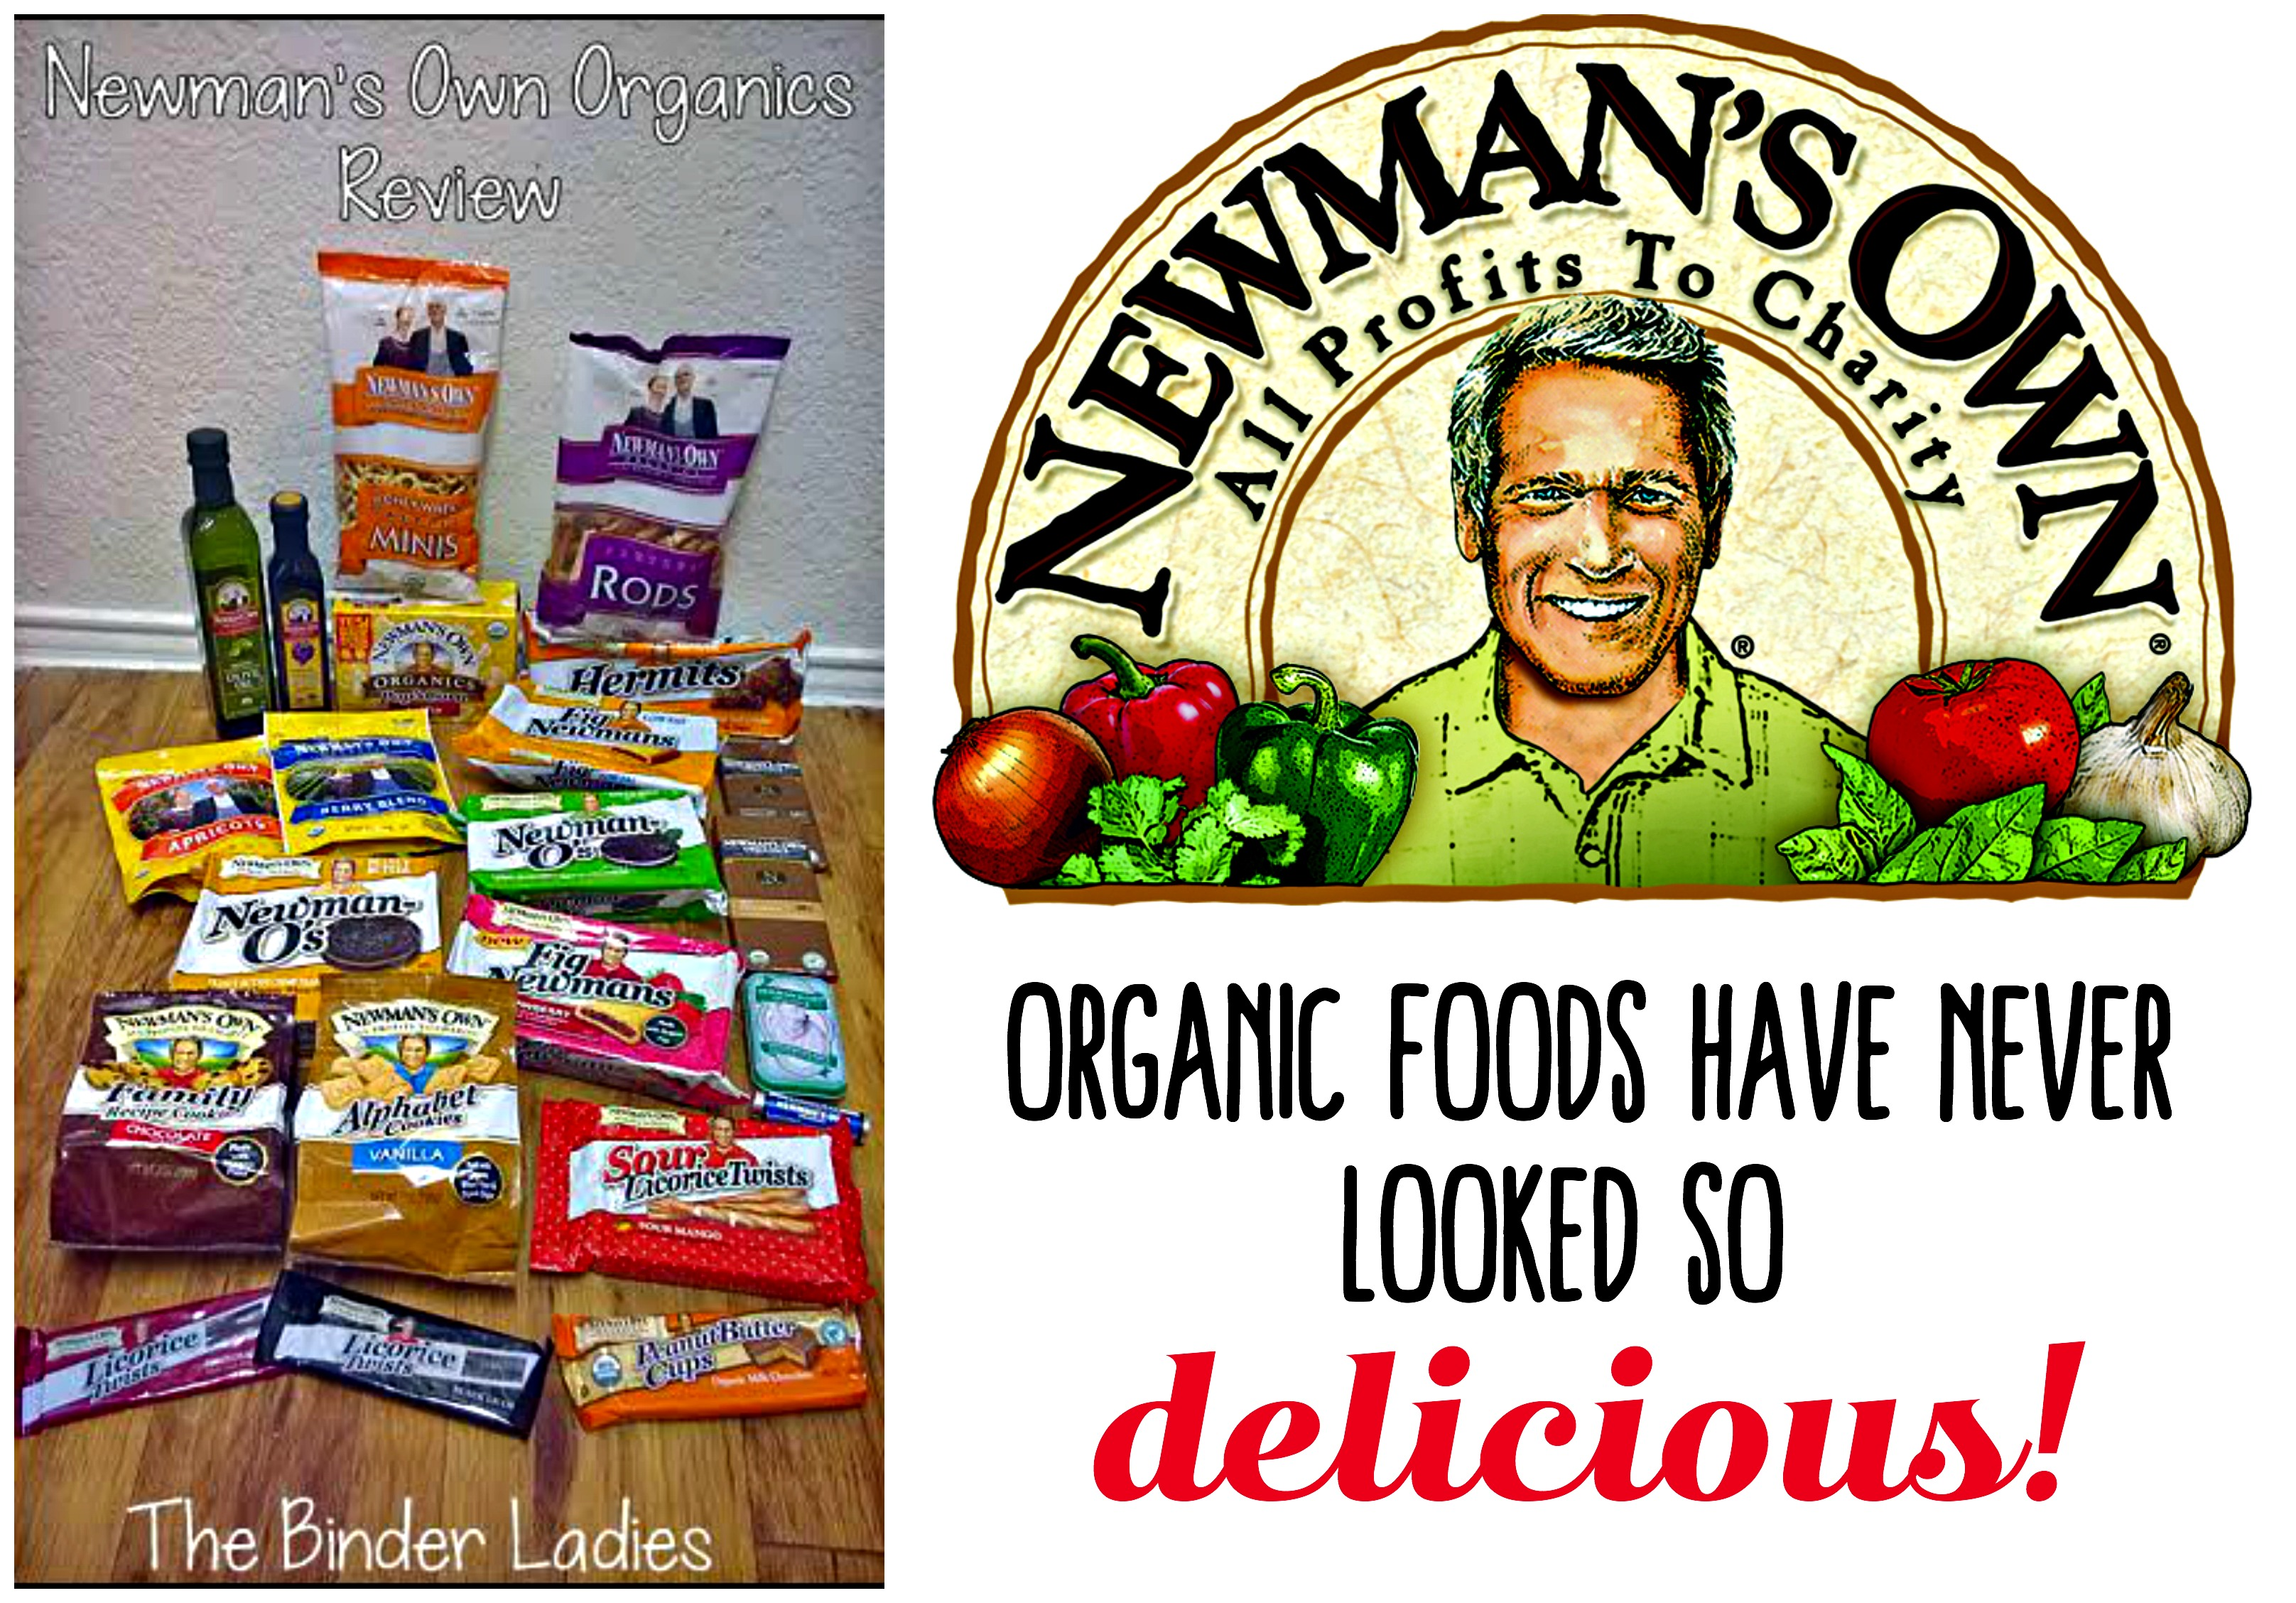 Newman's Own Organics - organic and natural foods and snacks!